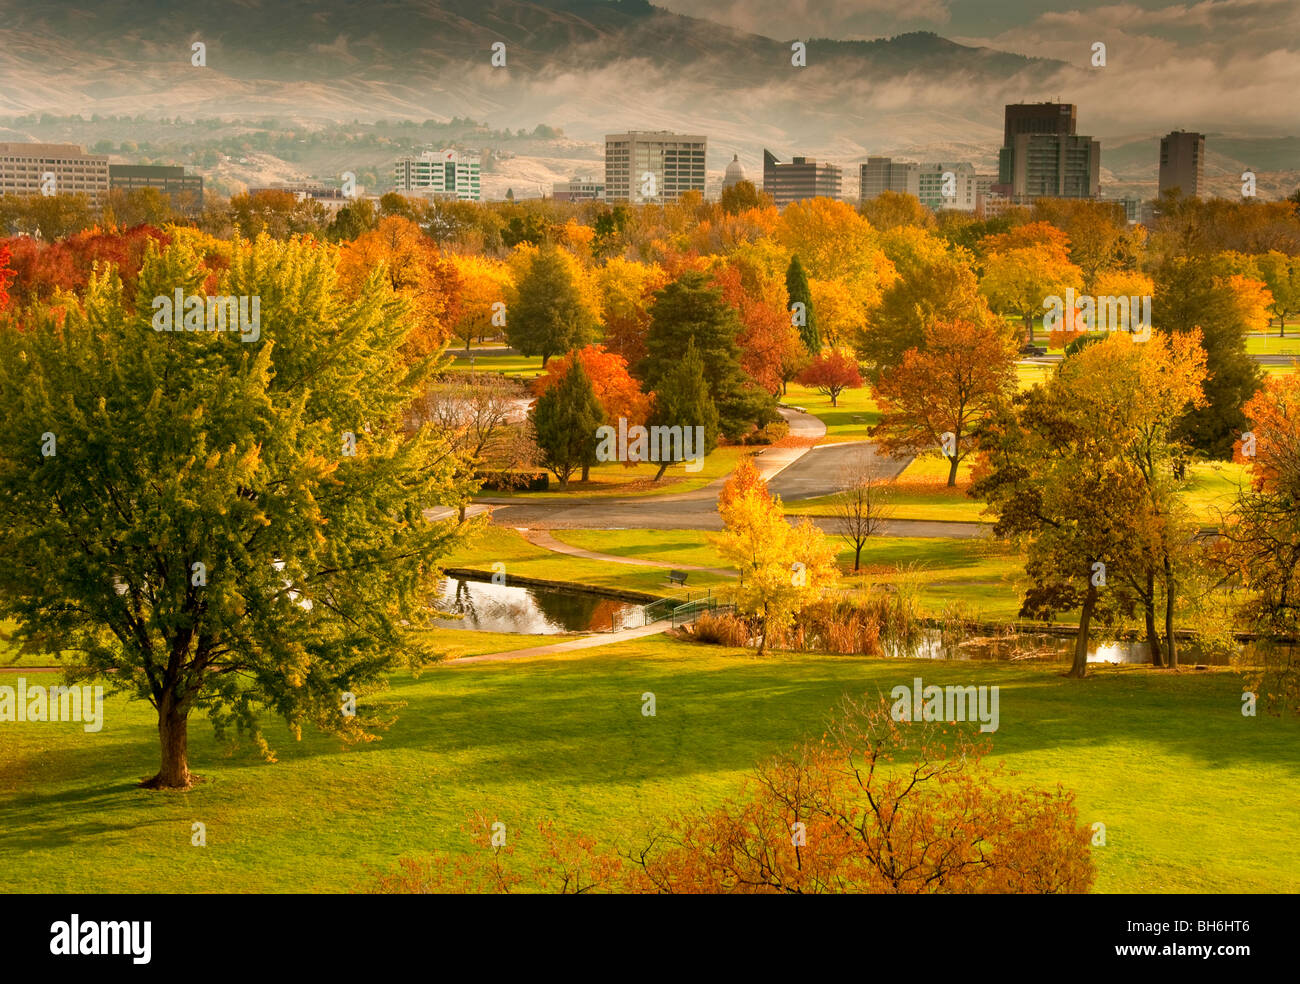 Idaho, Boise. Autumn scenic of Ann Morrison Park and downtown. - Stock Image